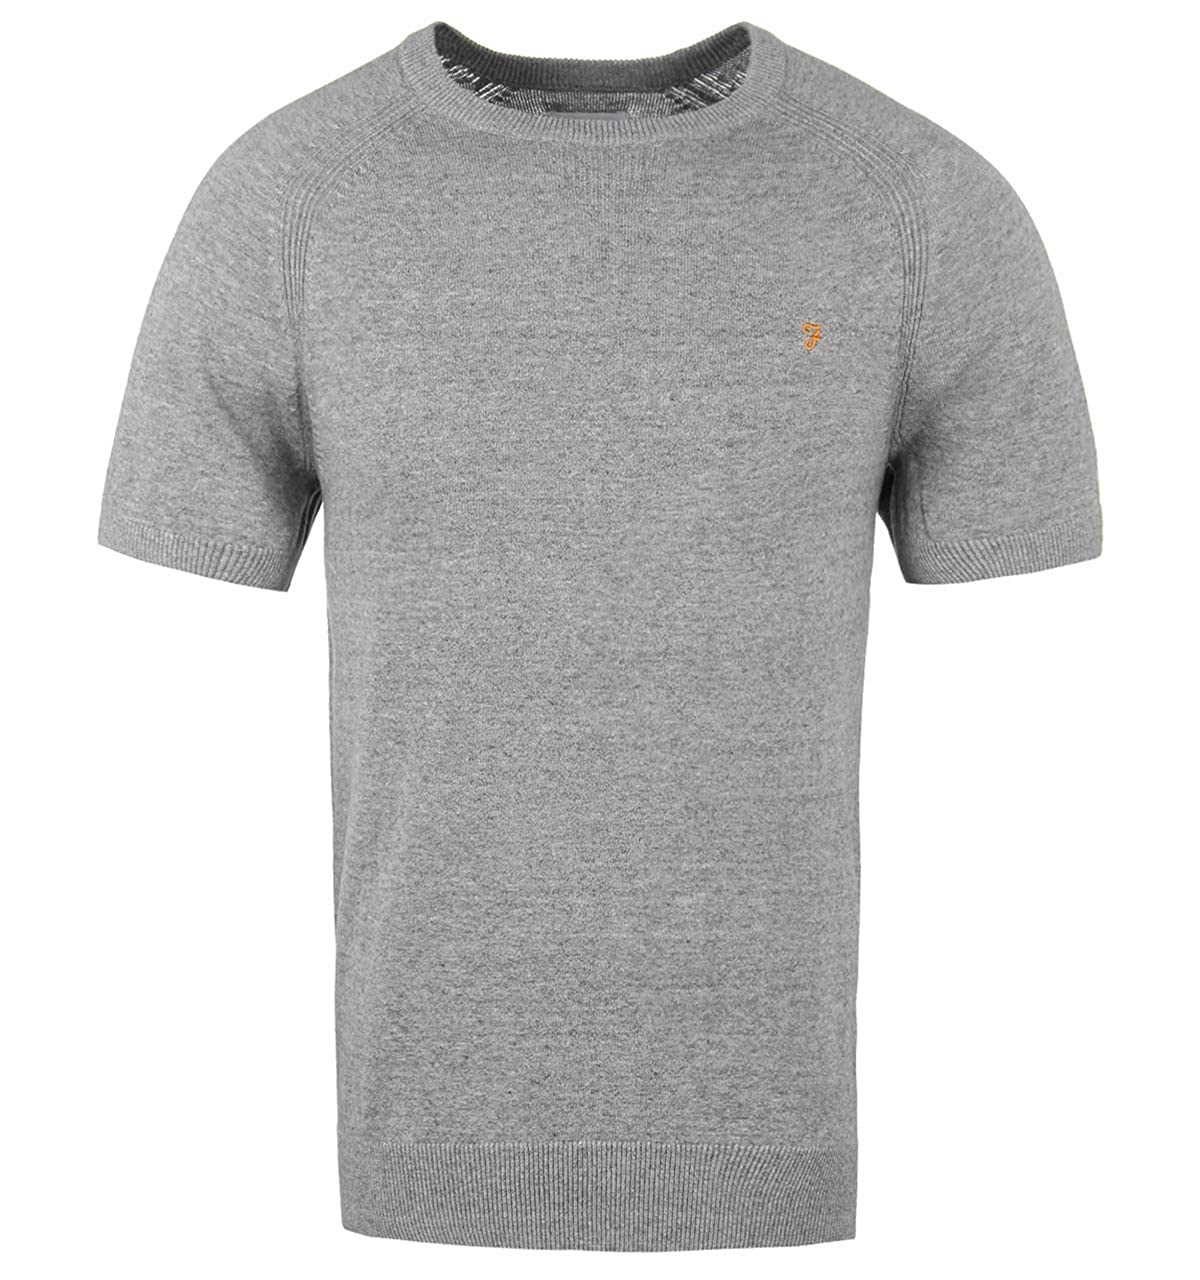 Farah Ethan Light Grey Marl Raglan sleeve Maglietta